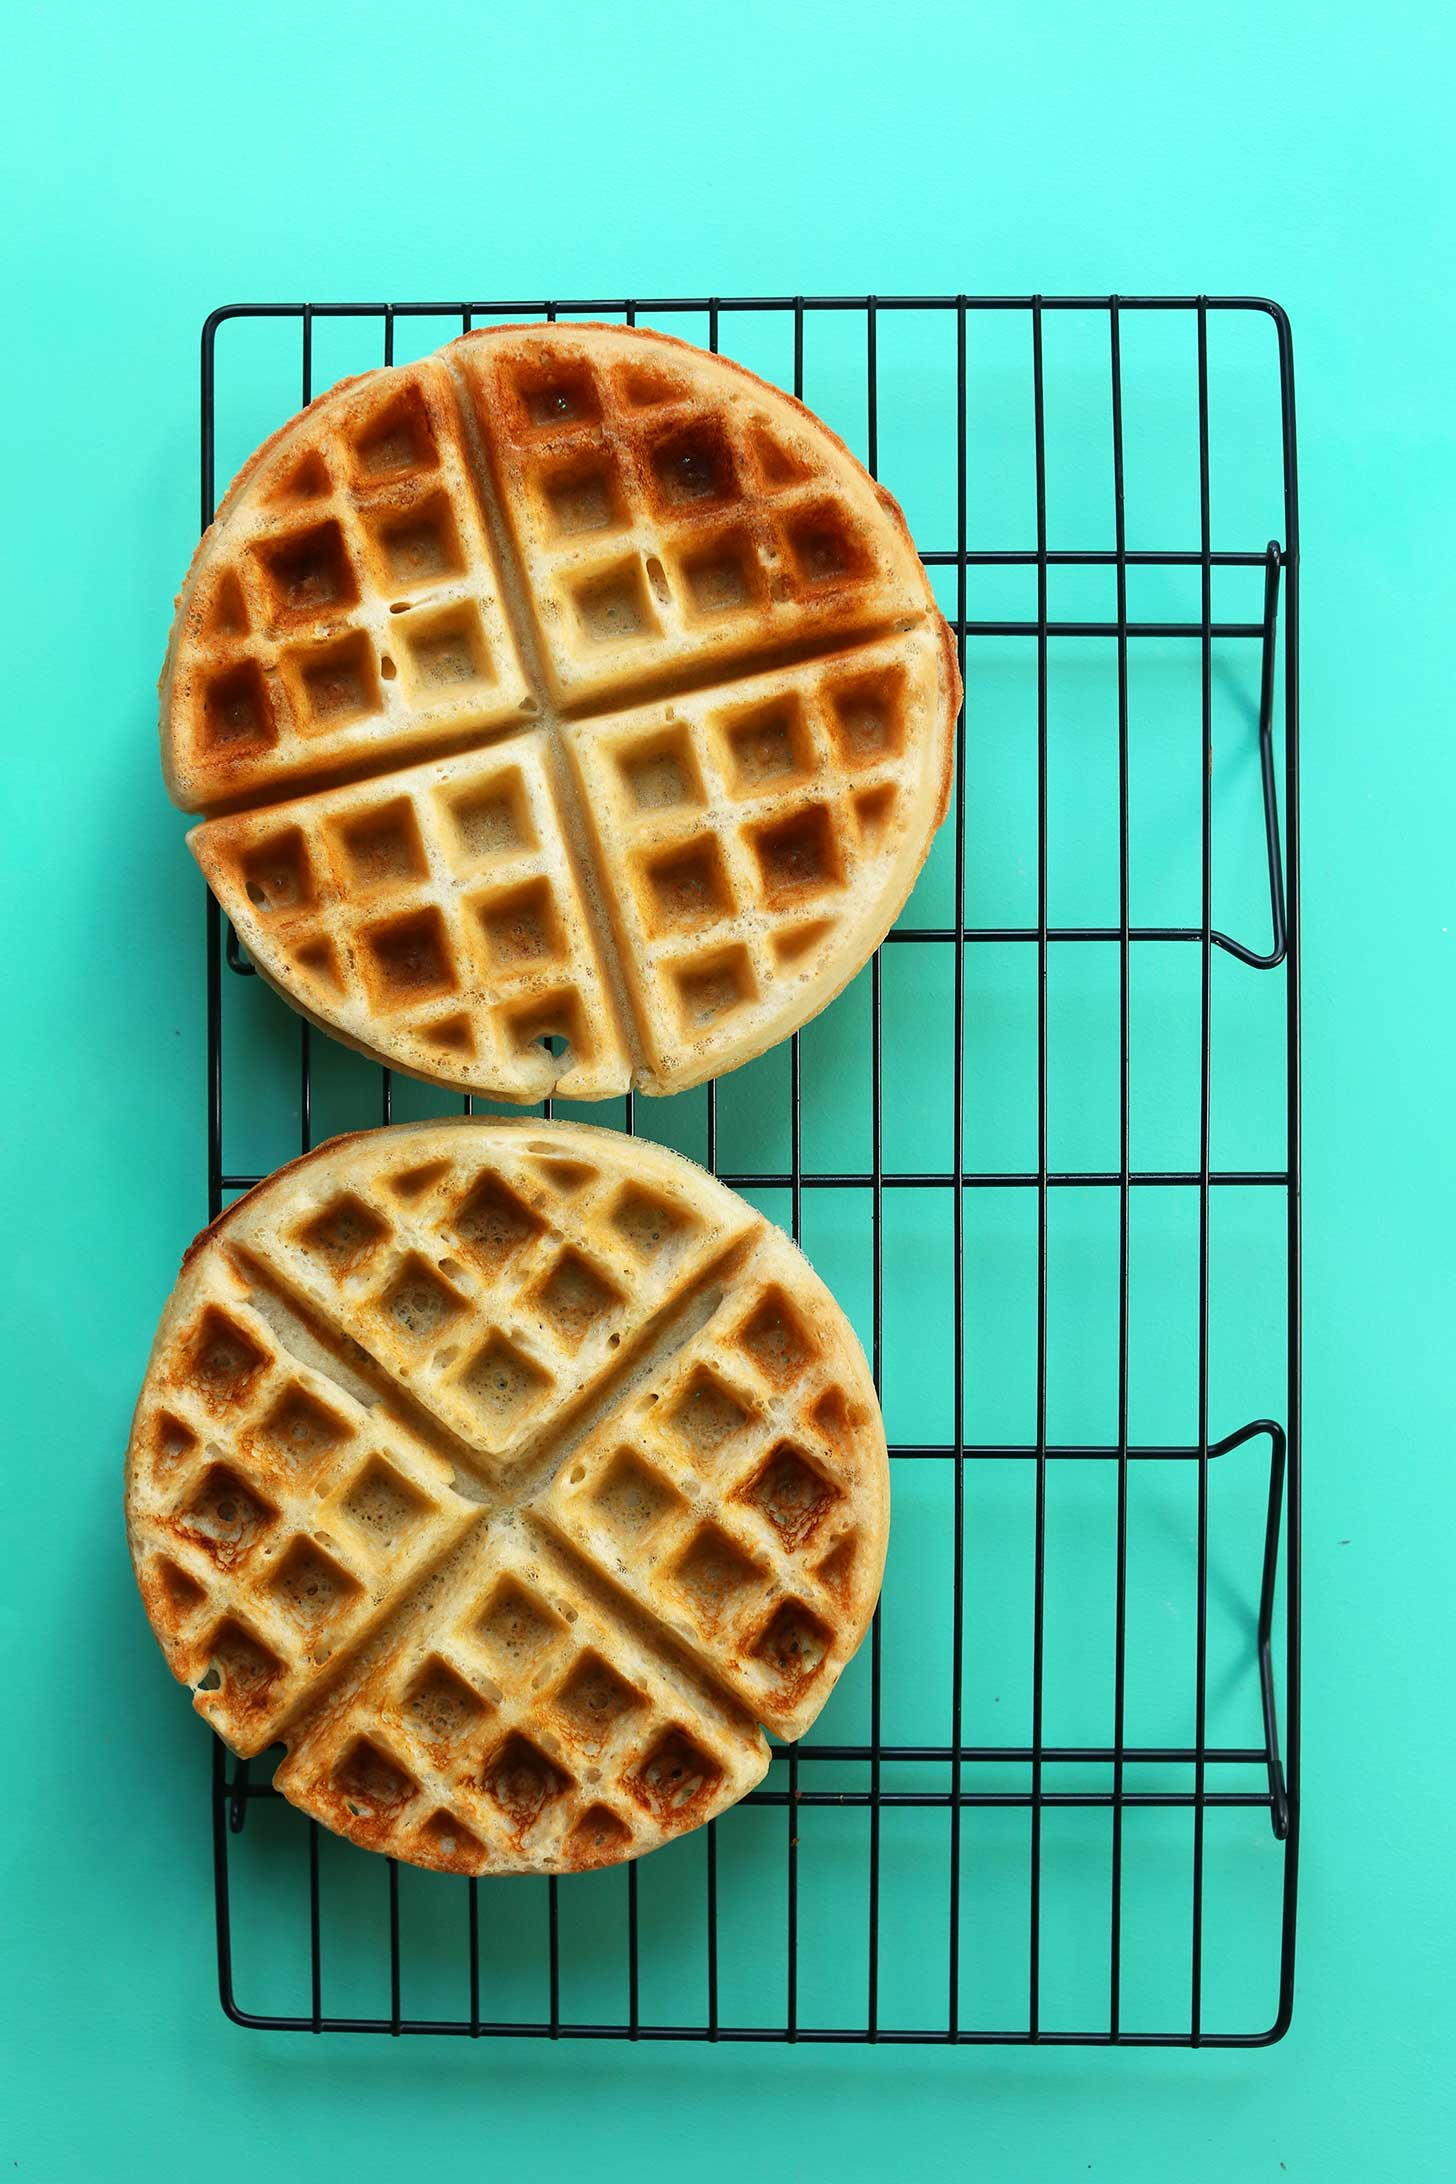 Two perfectly browned waffles made using our Vegan Gluten-Free Waffles recipe